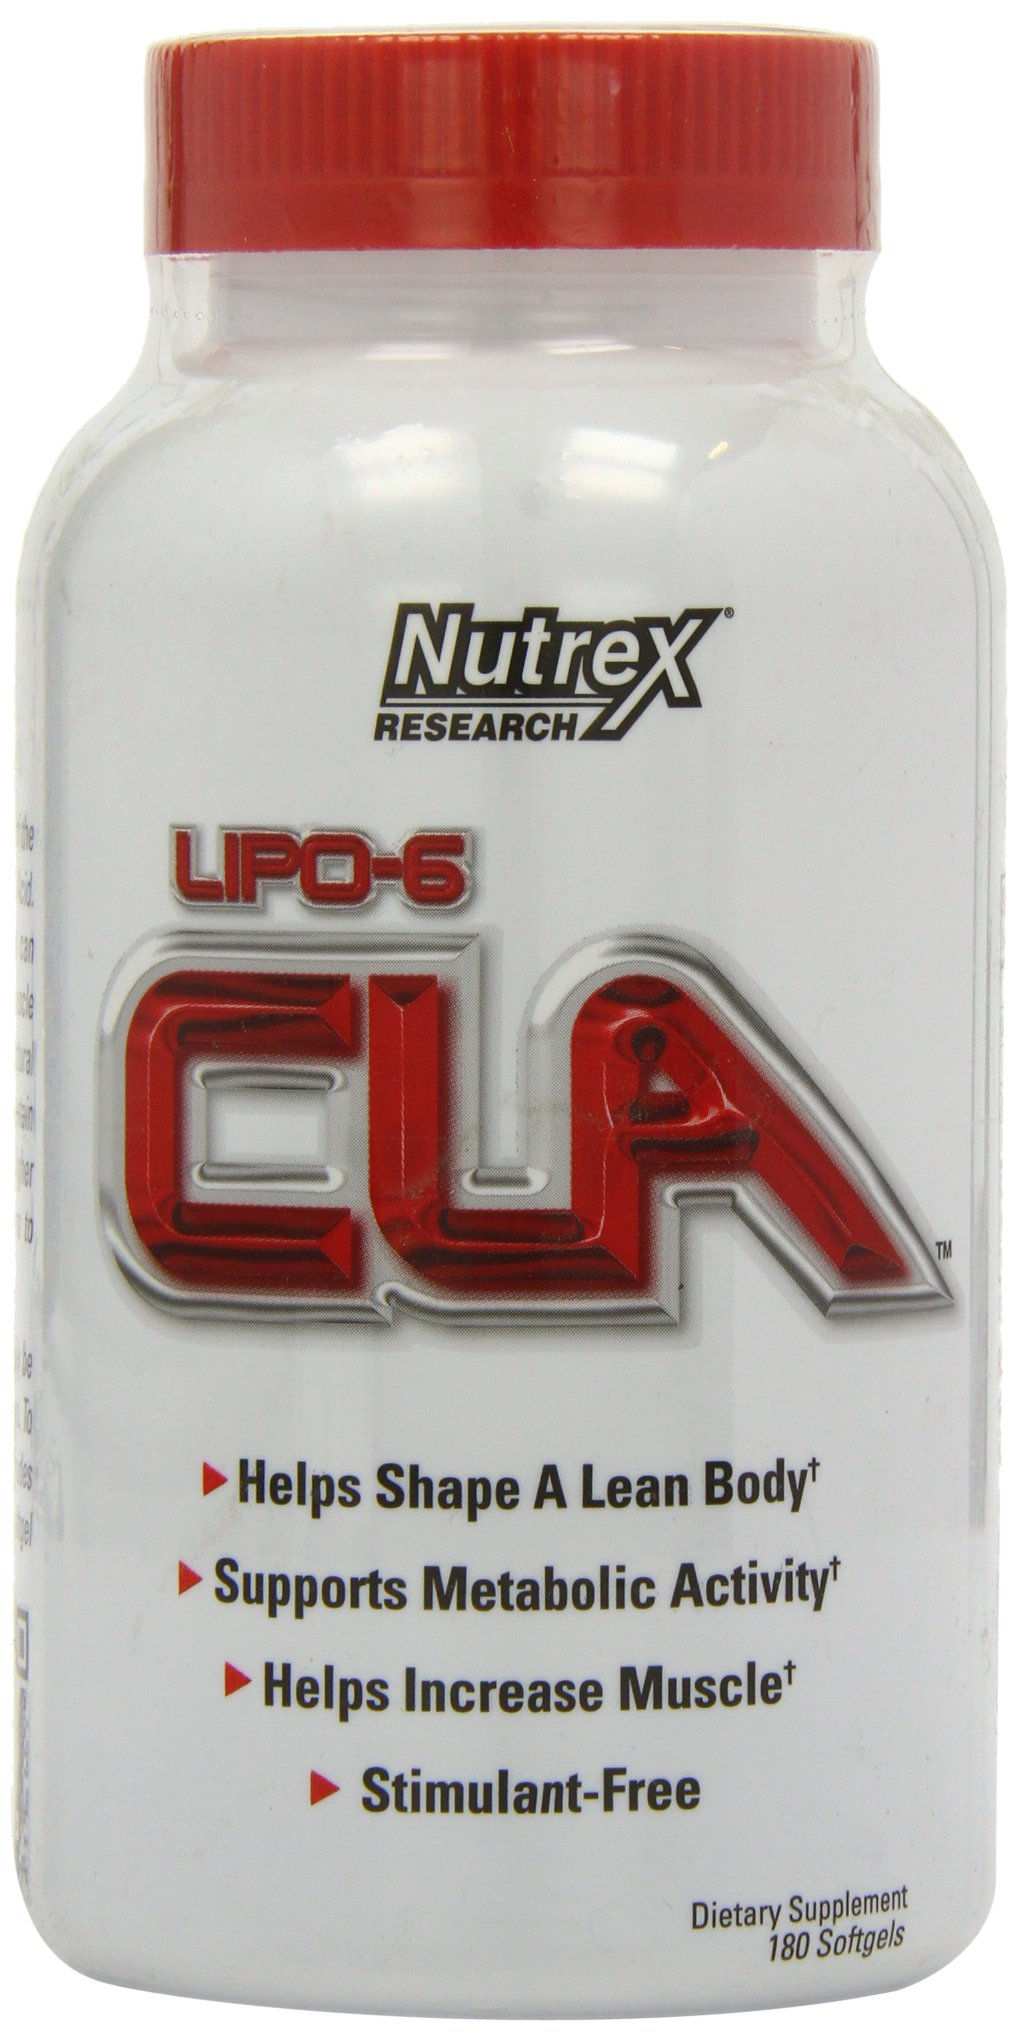 Nutrex Research Lipo-6 CLA 180 Softgels